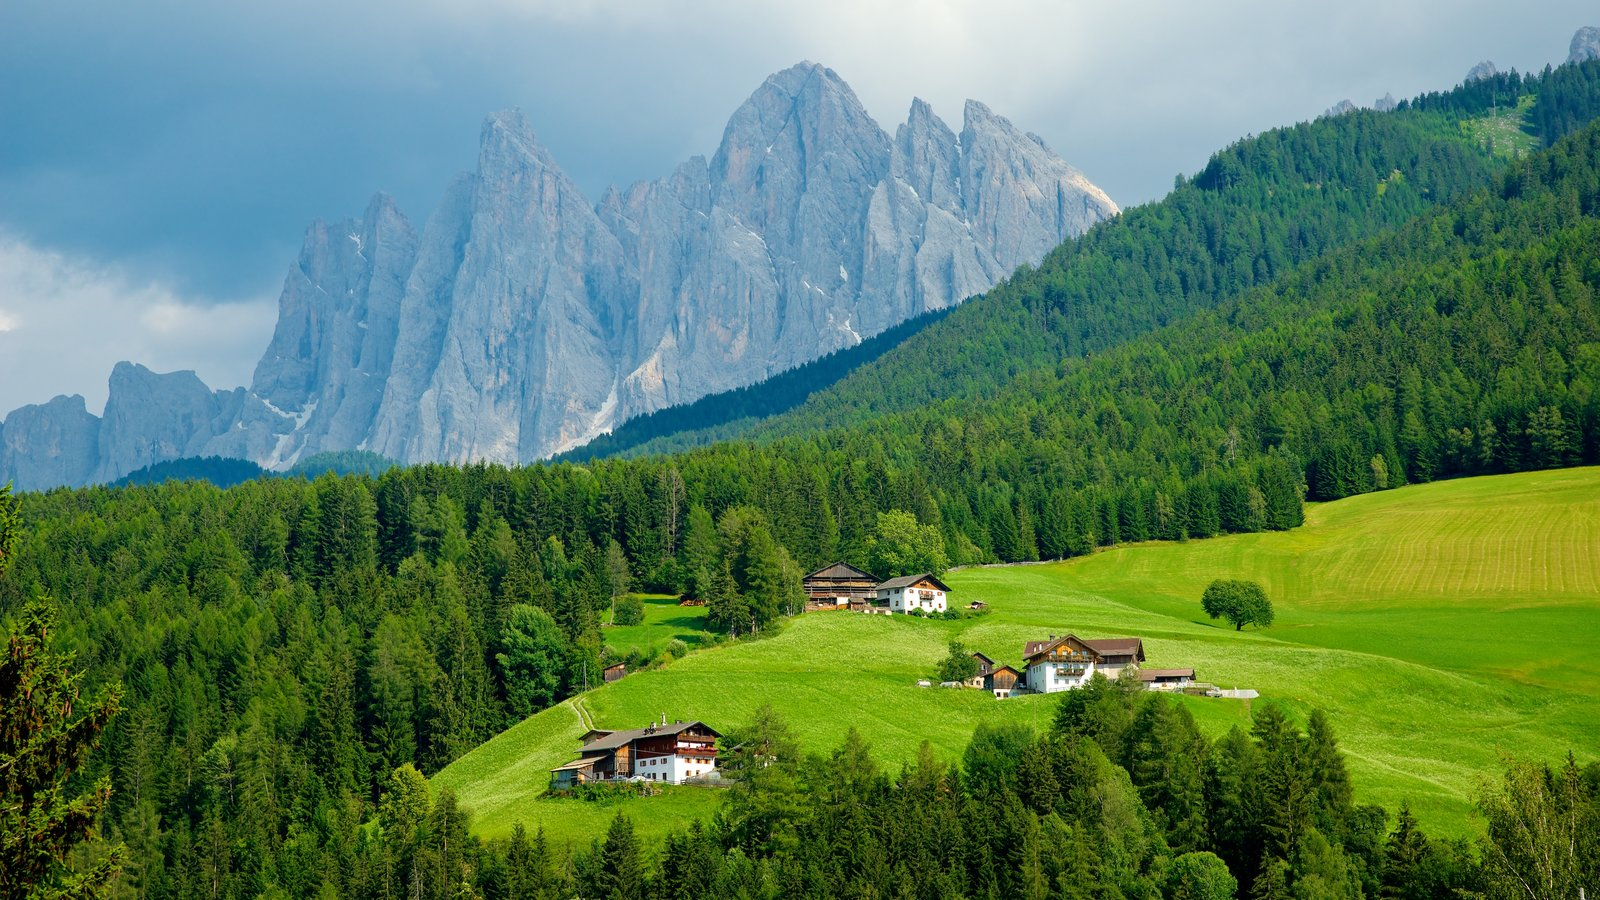 Funes featuring tranquil scenes, farmland and mountains